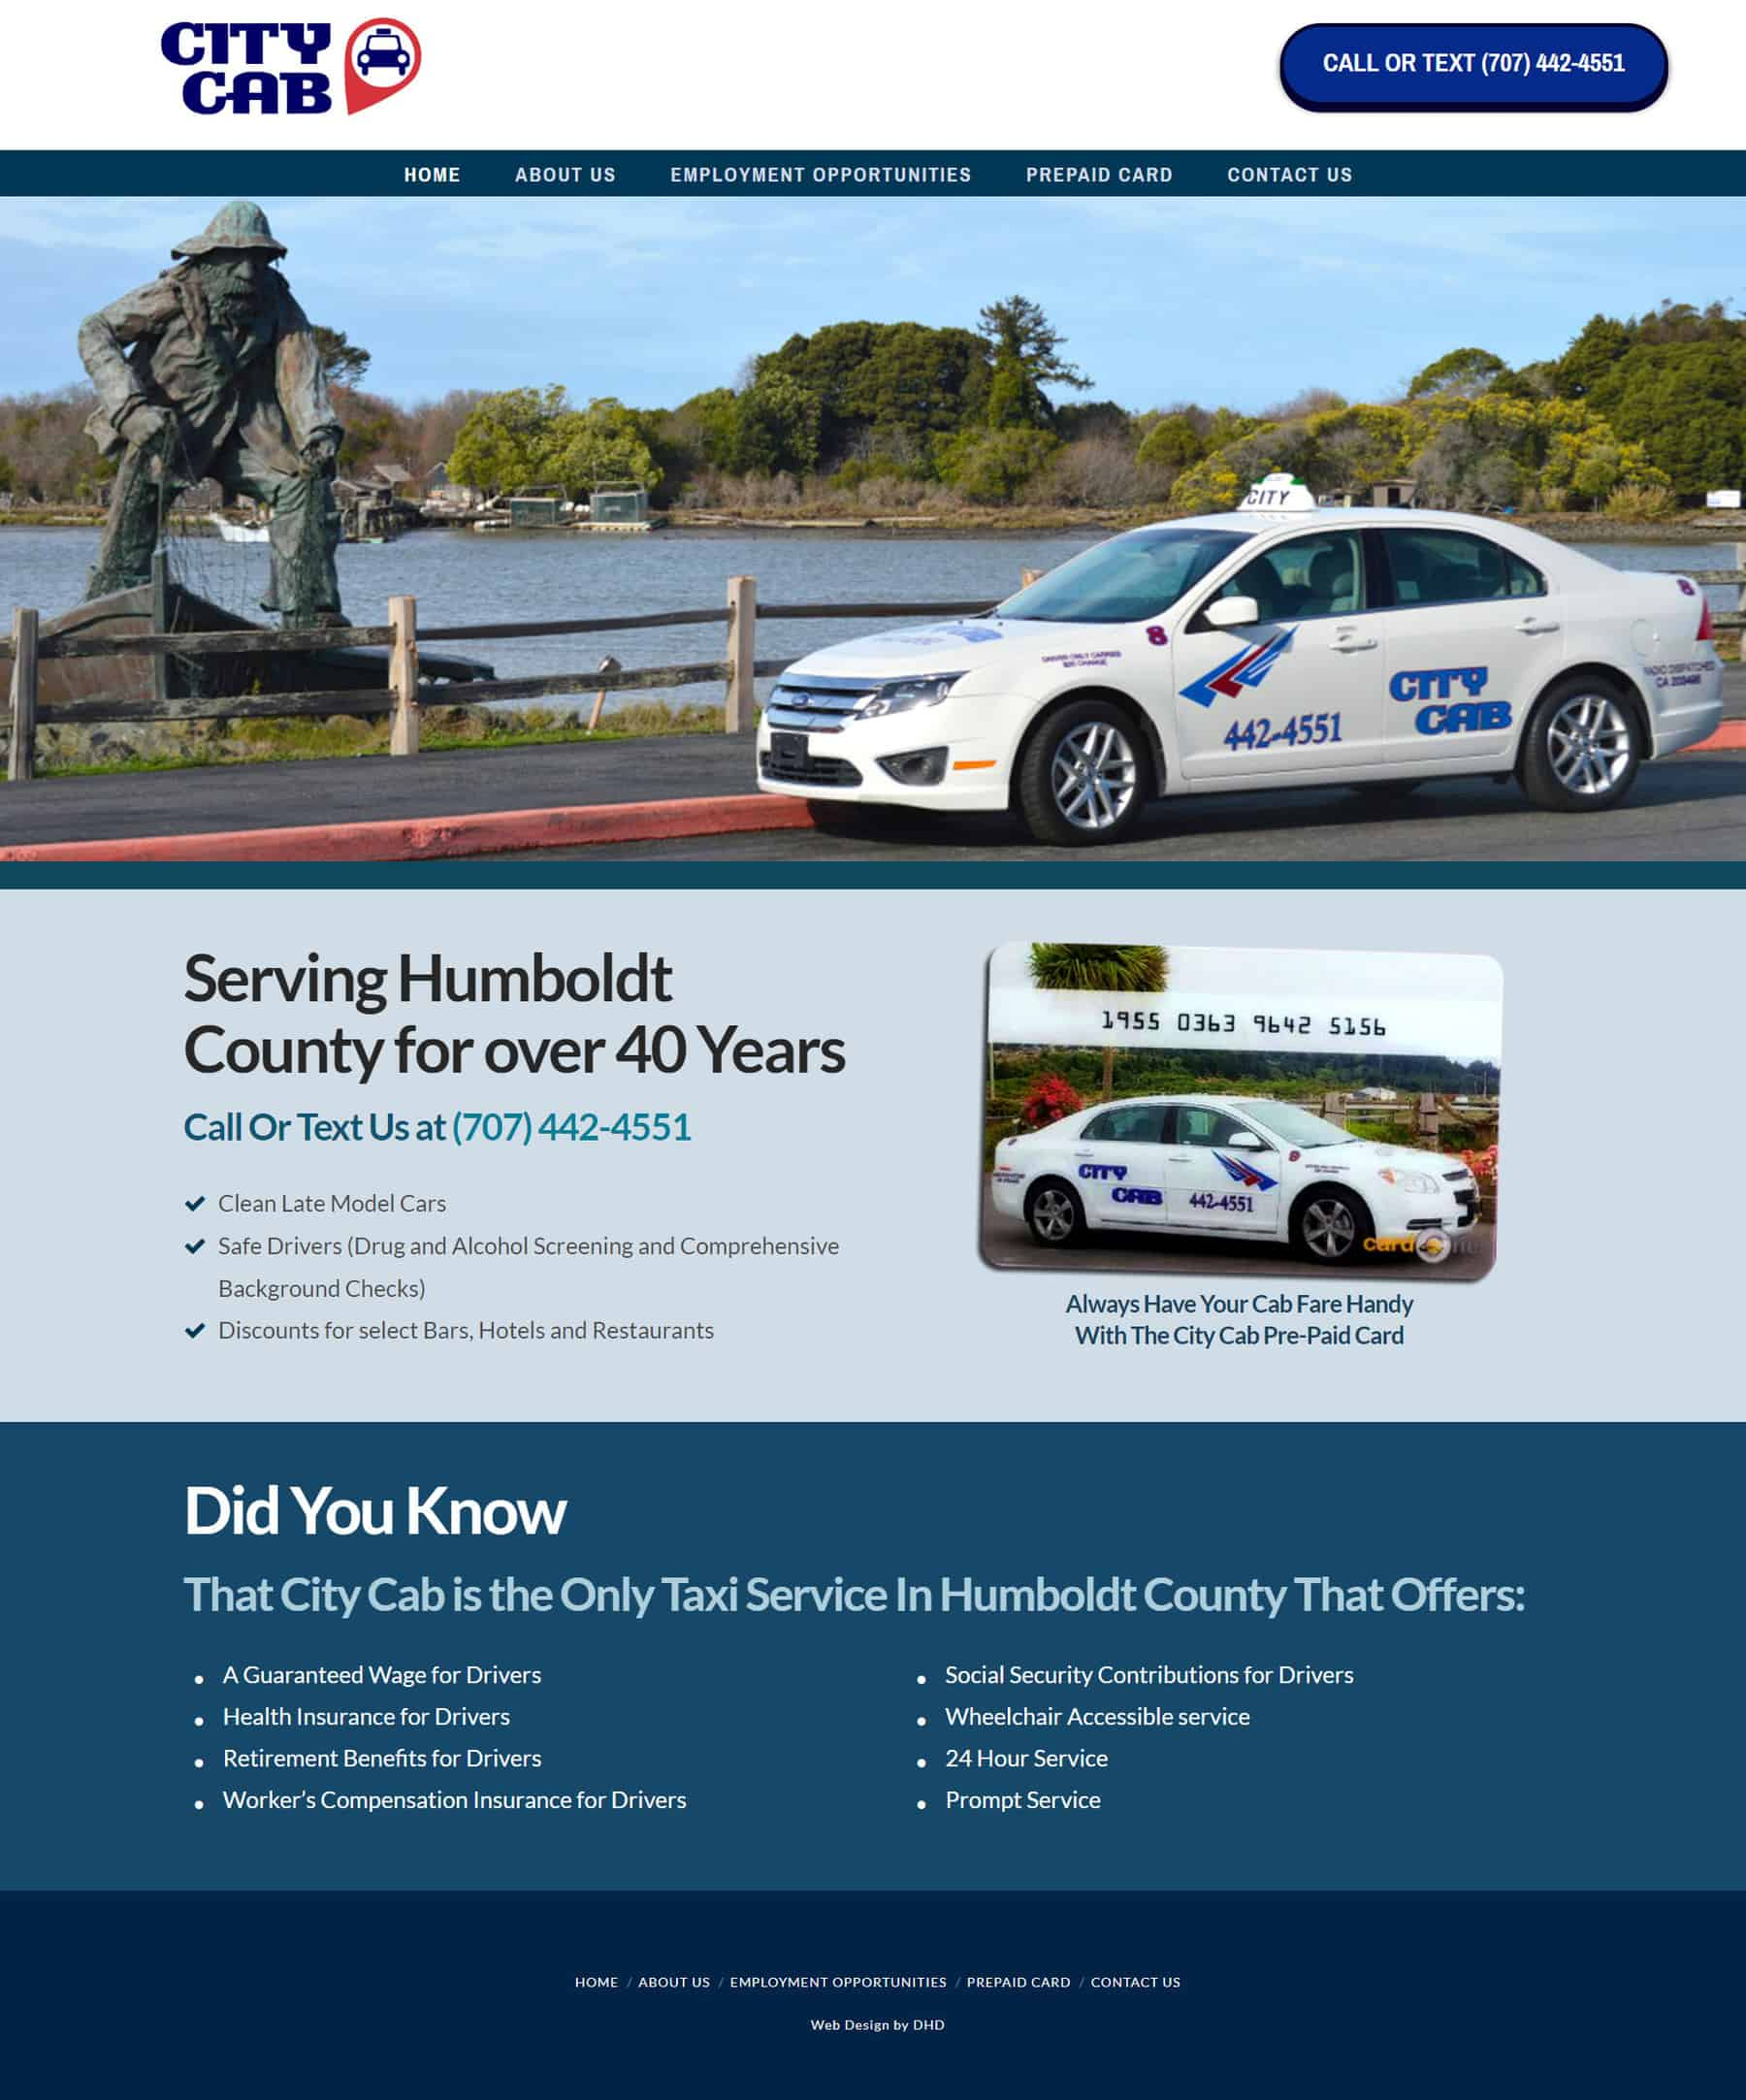 City Cab Humboldt County Website